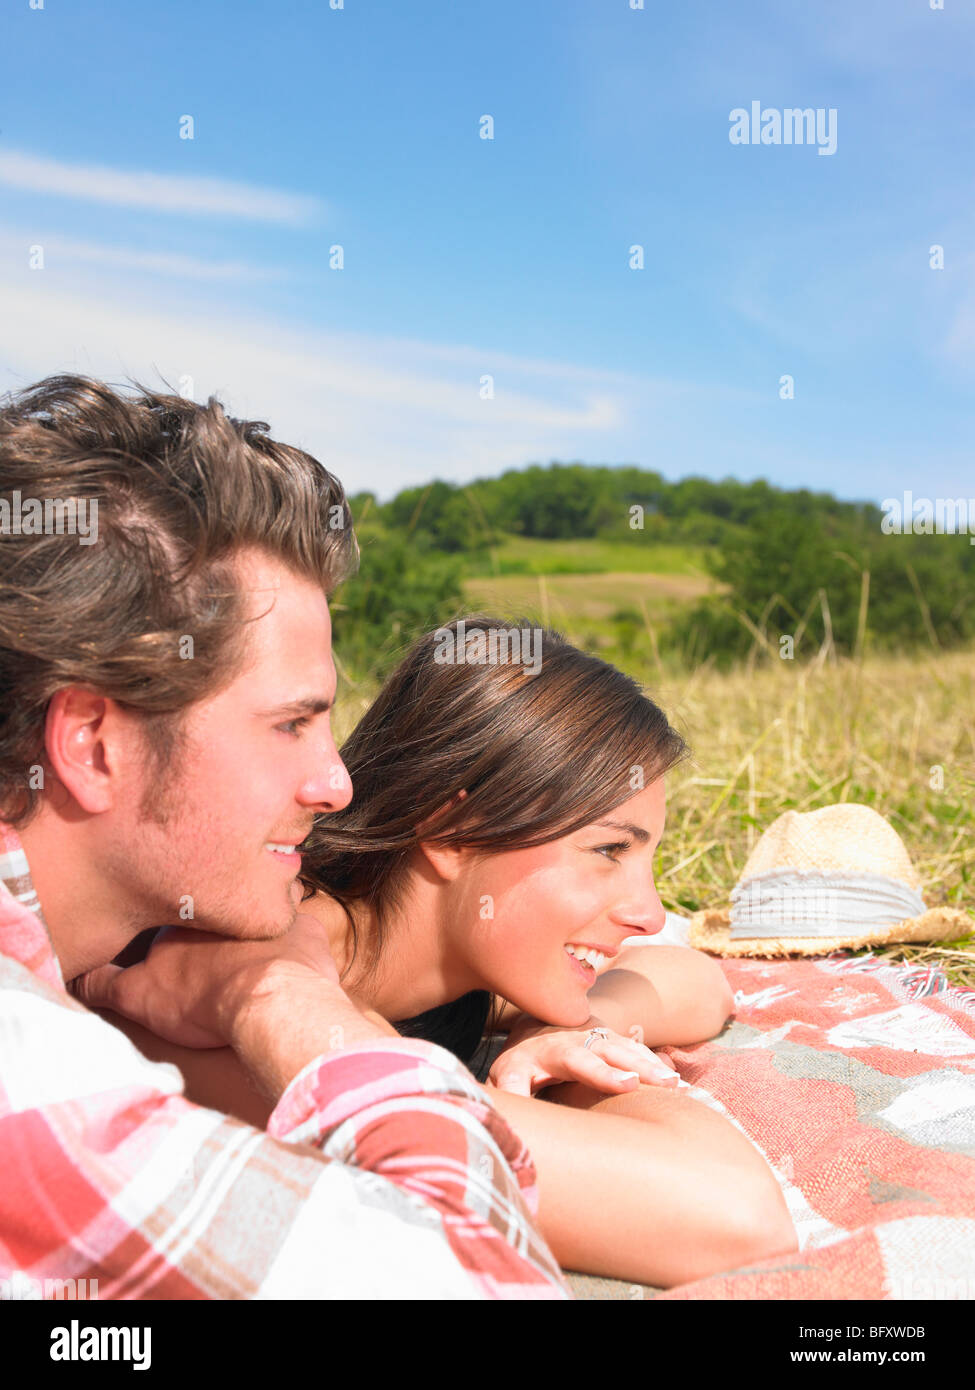 couple on blanket in field - Stock Image